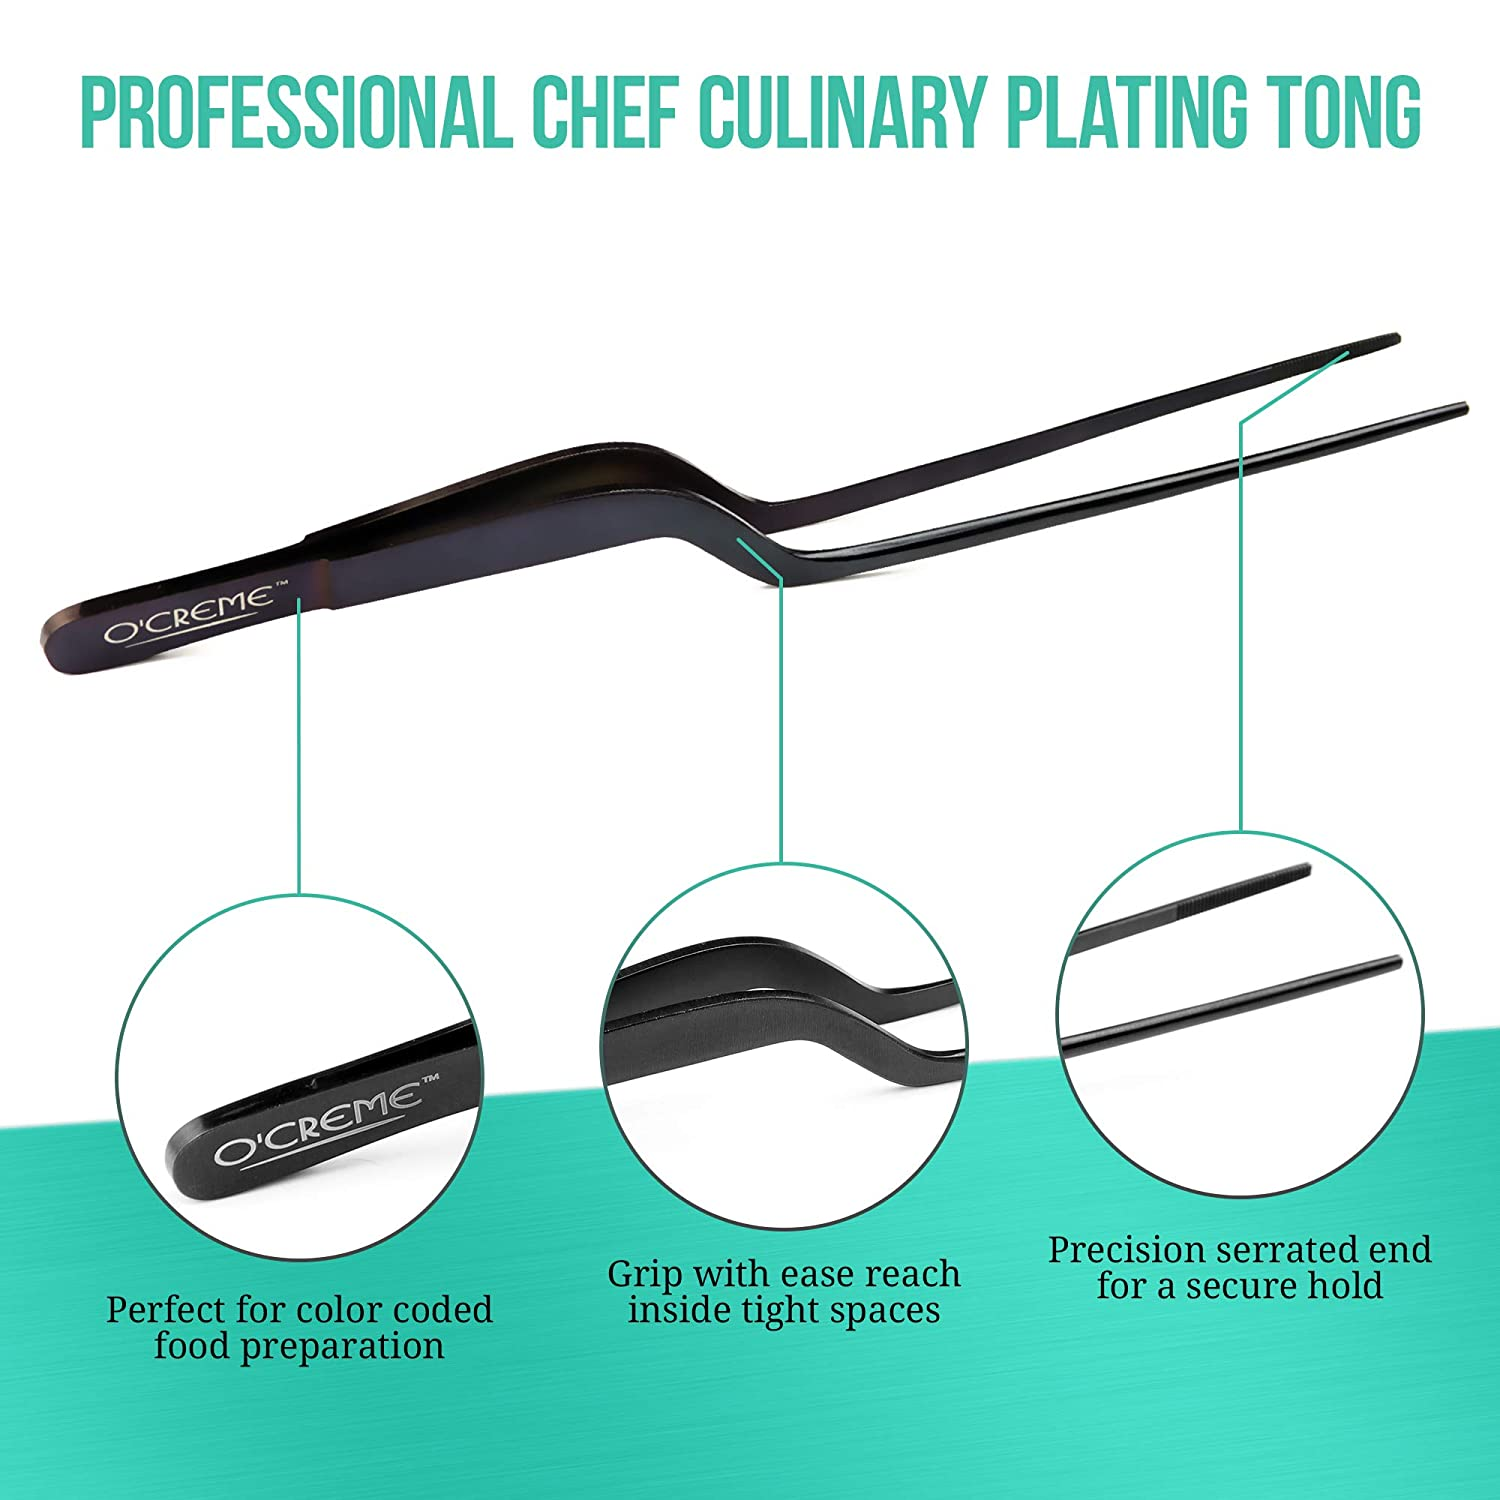 OCreme 8 Inch Blue Stainless Steel Precision Kitchen Culinary Offset Tweezer Tongs